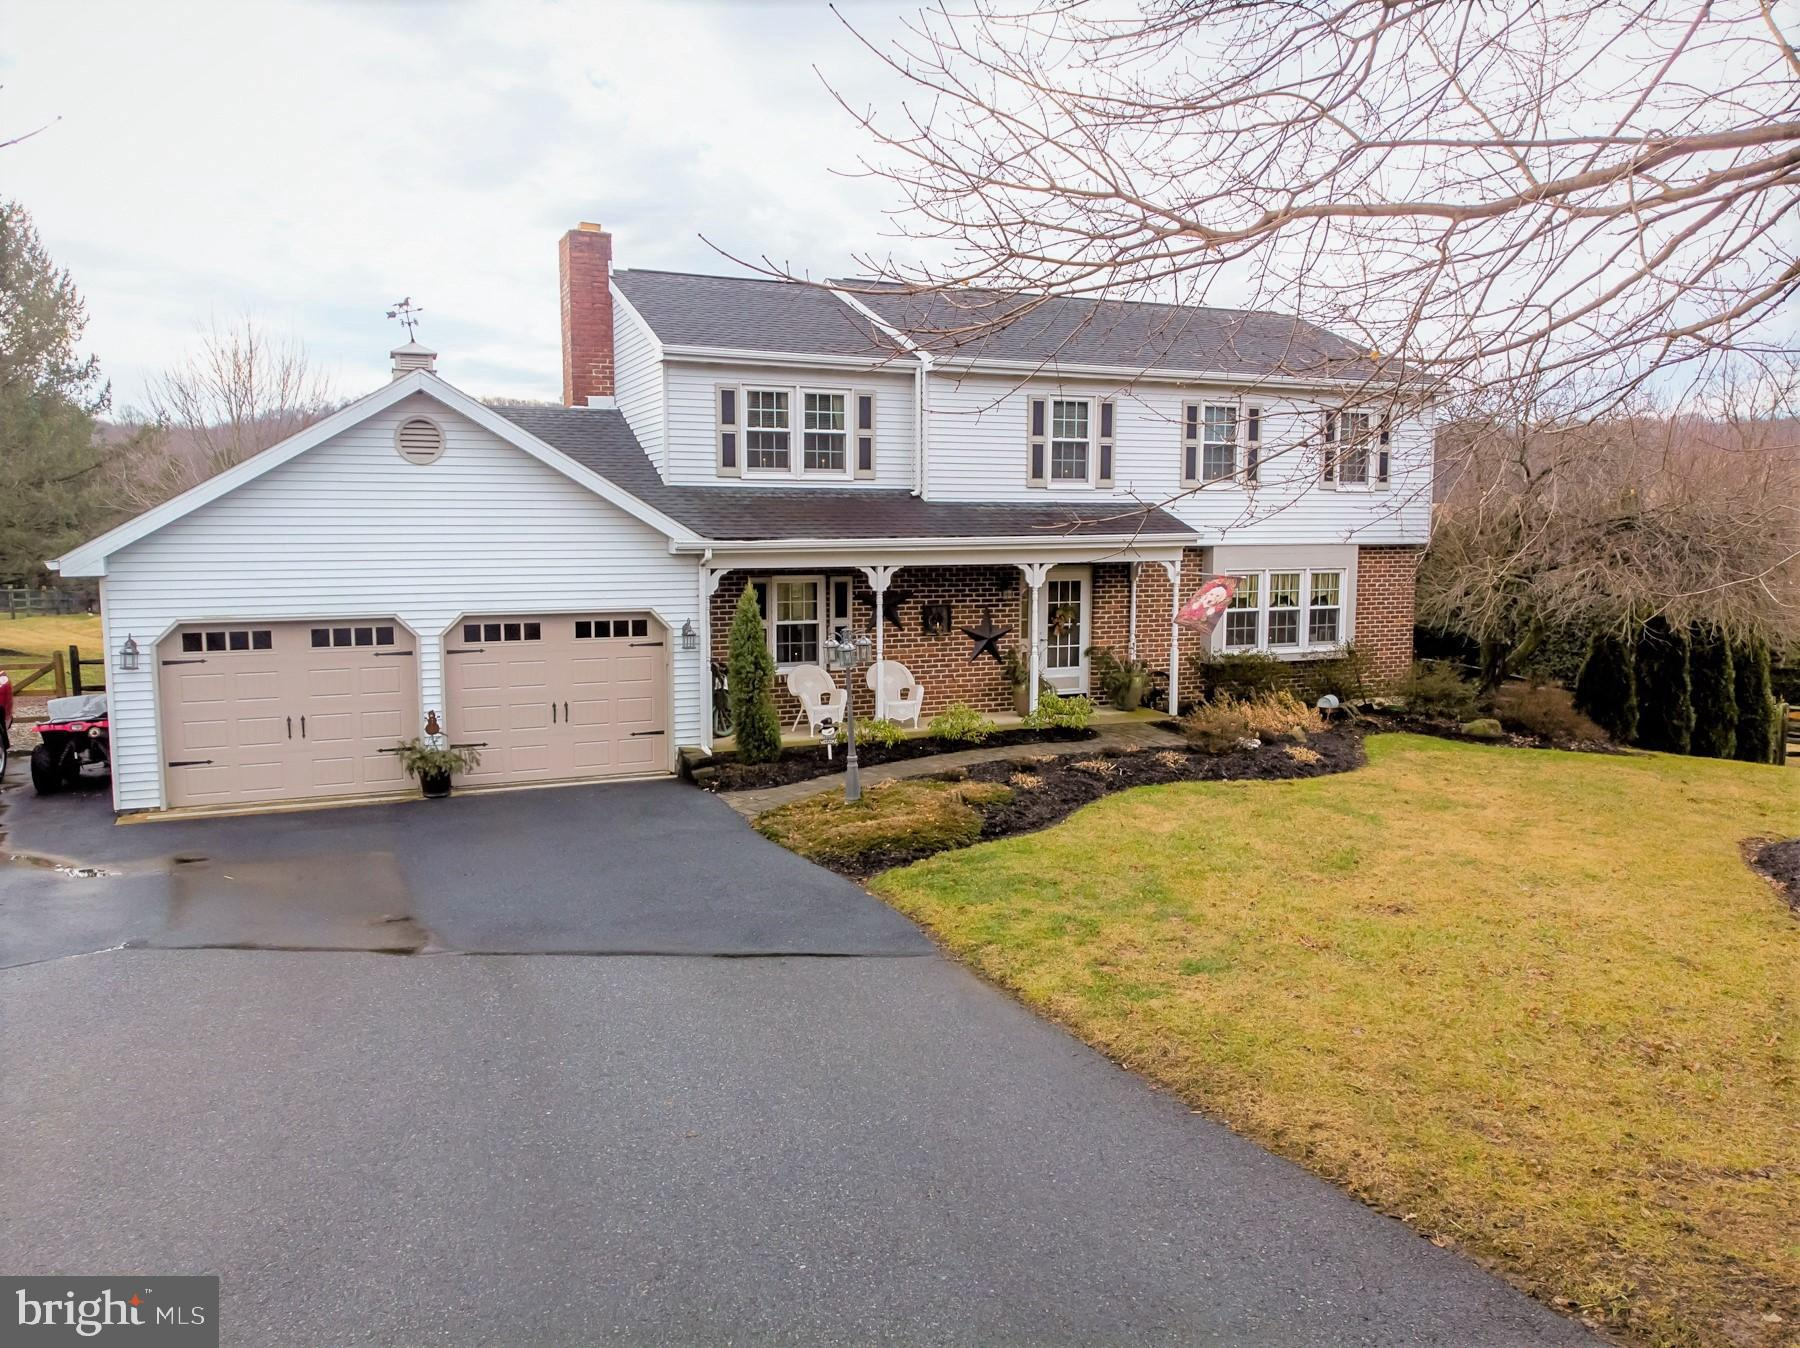 314 TEXTER MOUNTAIN ROAD, ROBESONIA, PA 19551